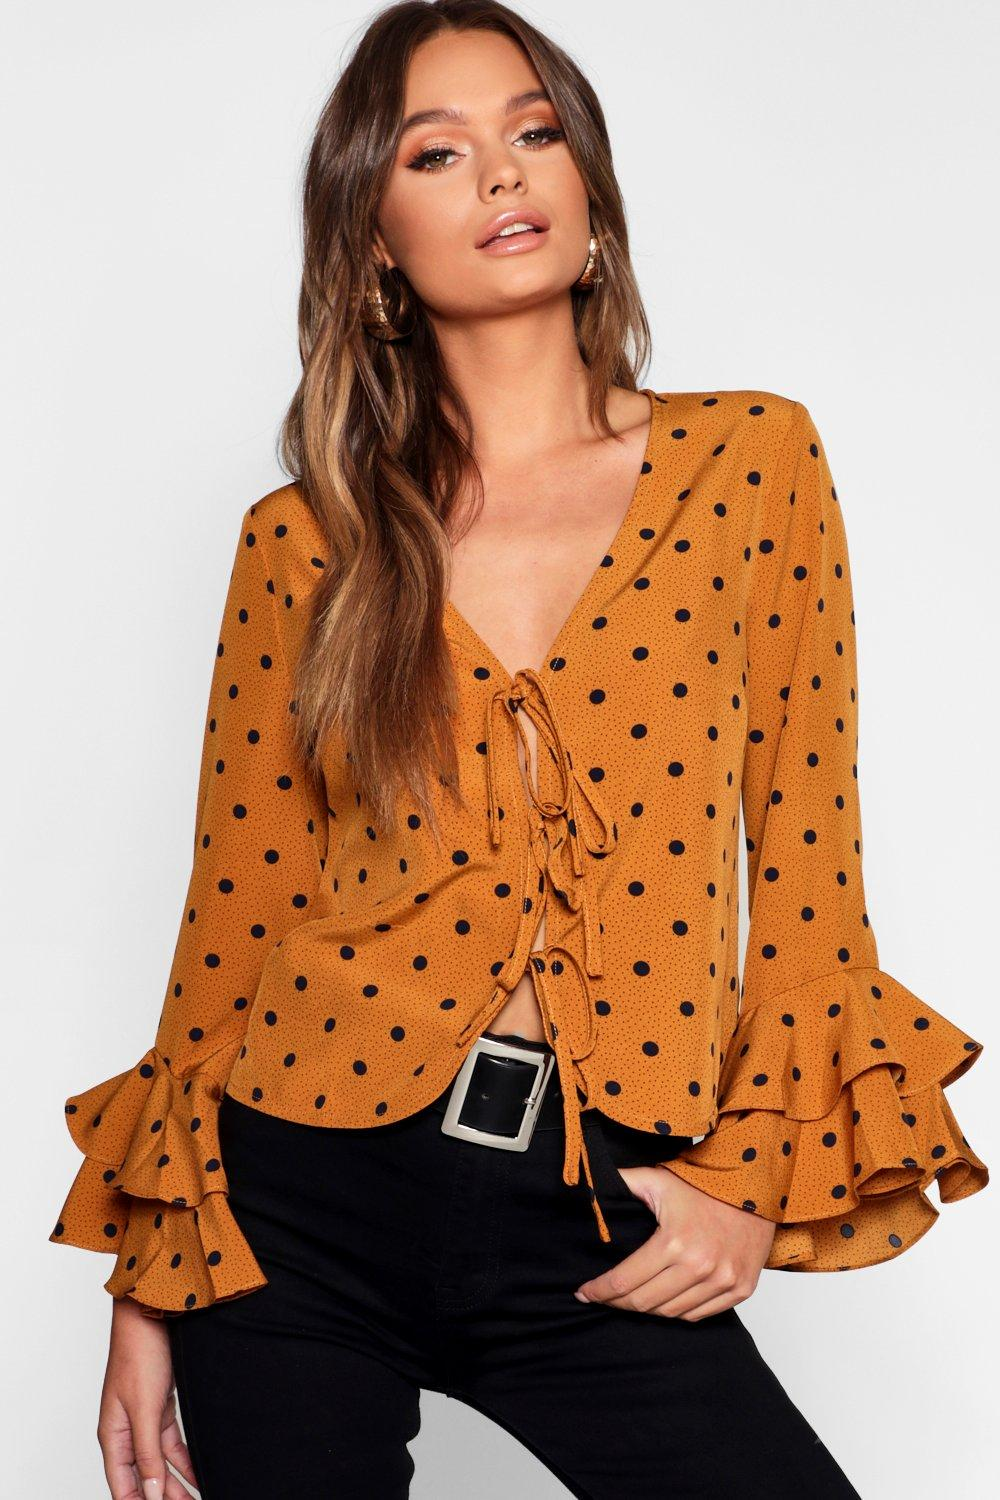 Blouse mustard Spot Tie Front Print qwSt0S